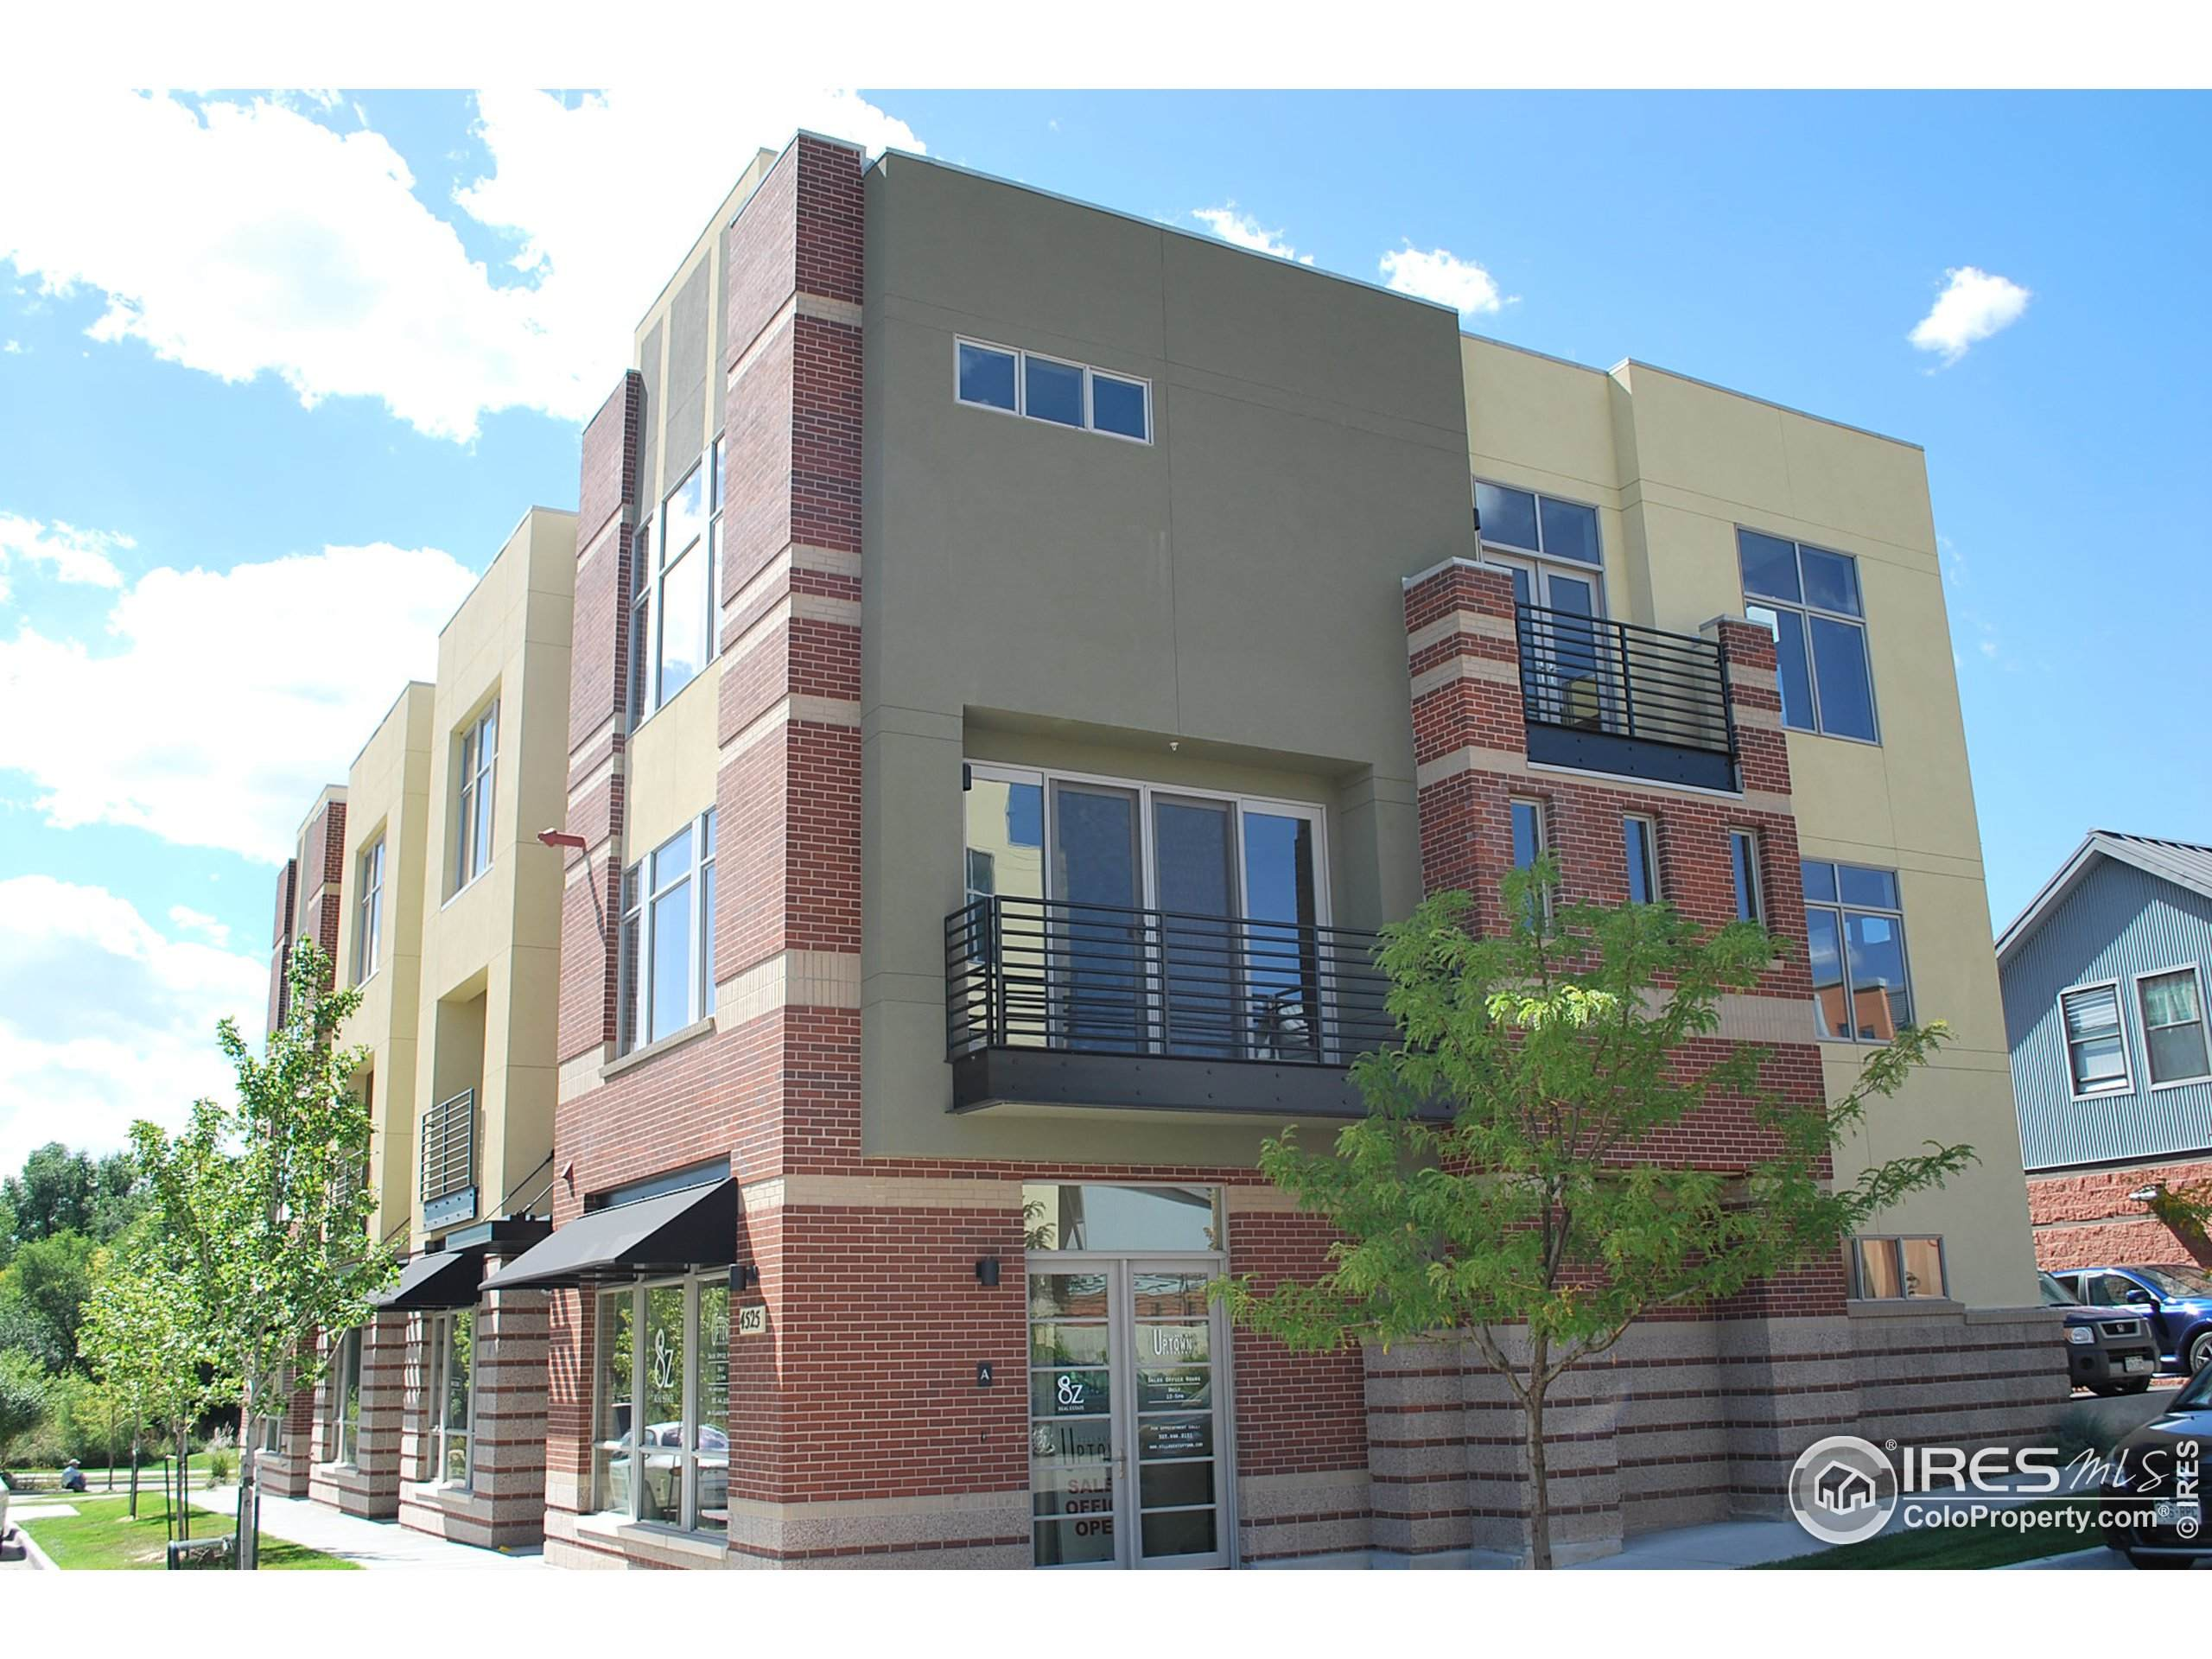 2331 Opal Ct, Loveland, CO 80537 (MLS #923320) :: Bliss Realty Group